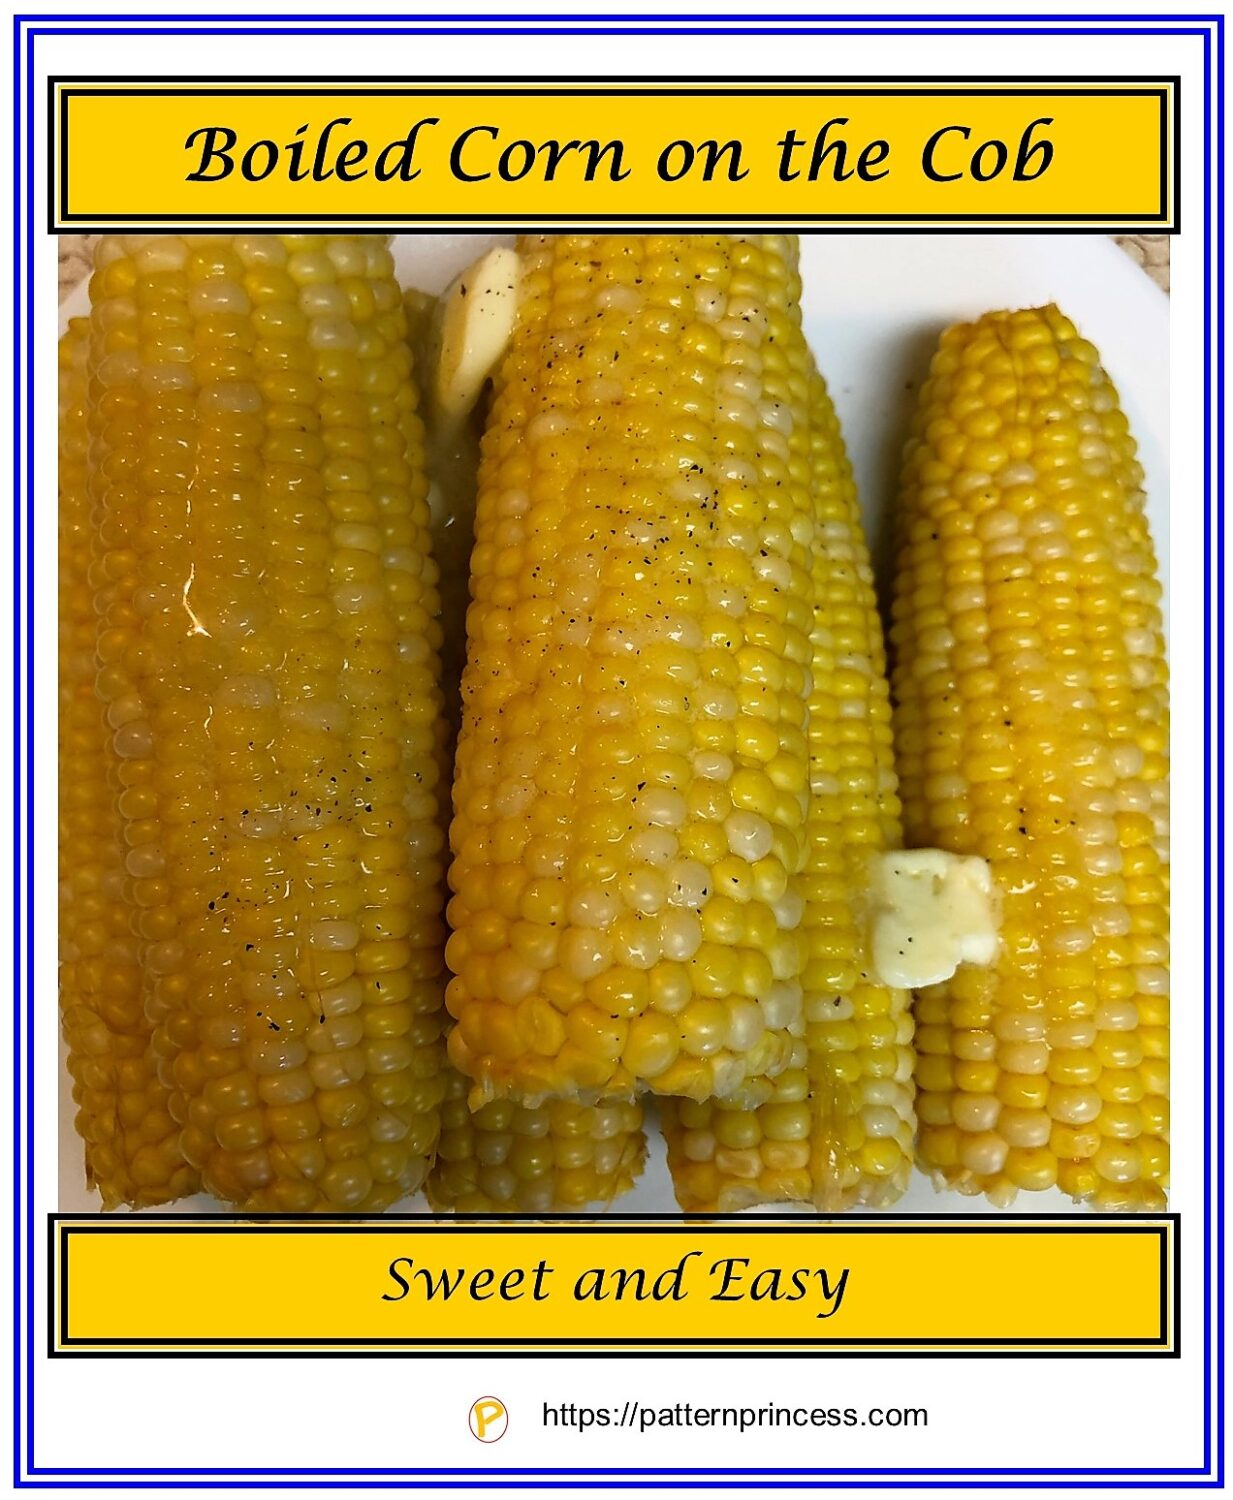 Boiled Corn on the Cob